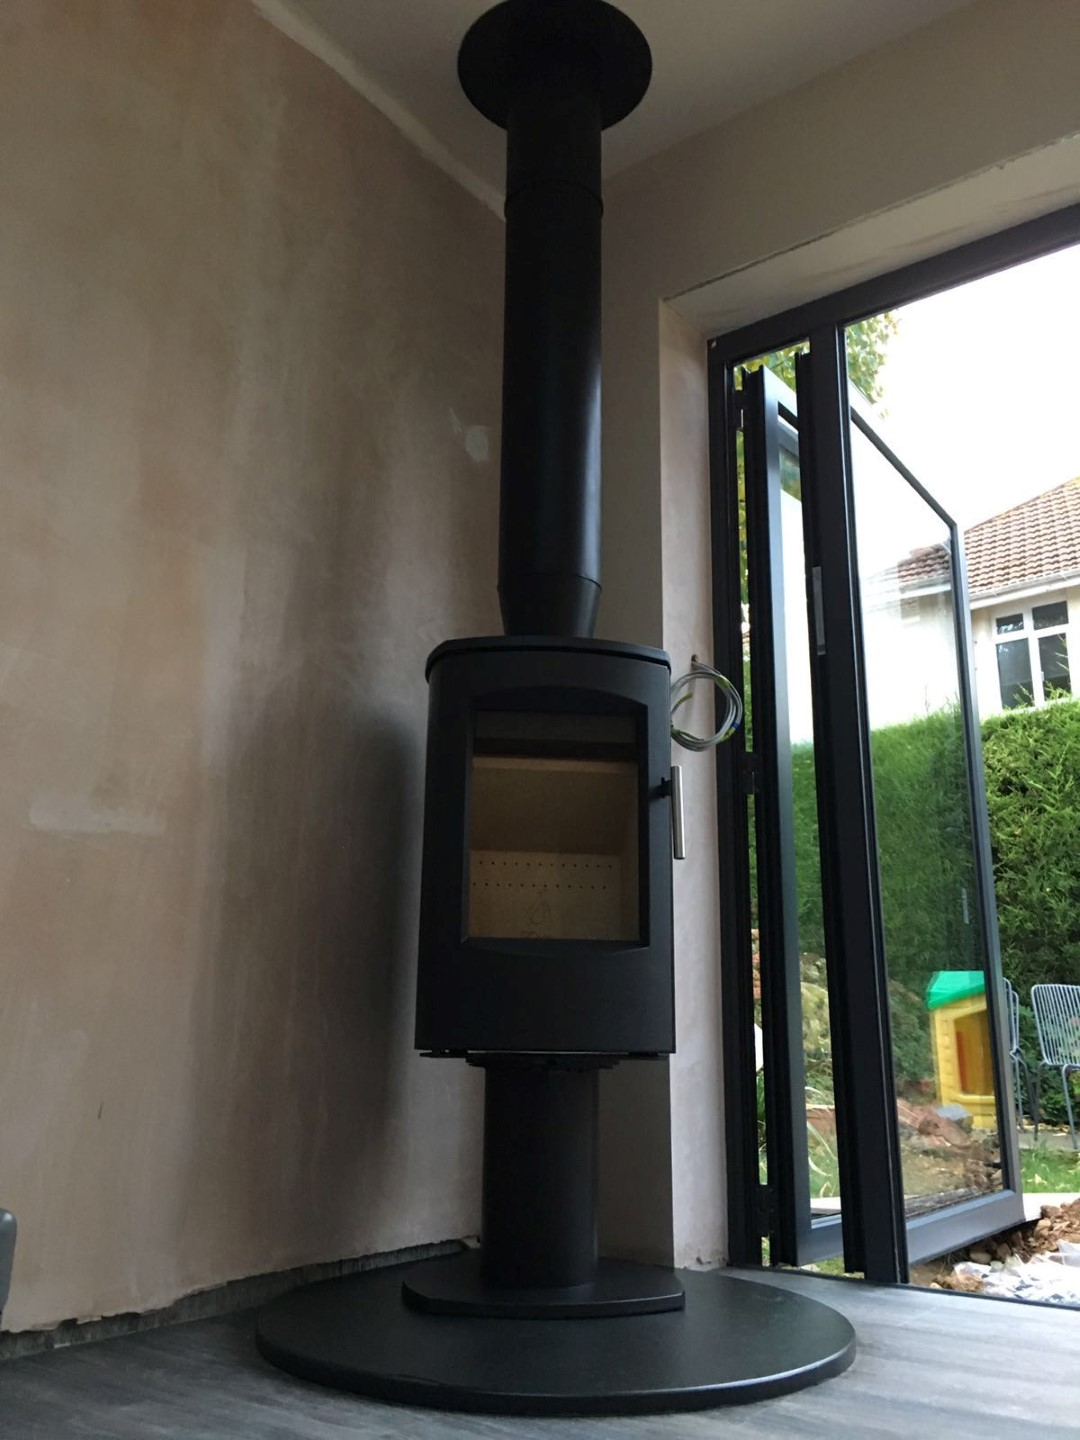 Installing a Wood Burning Stove in an Extension